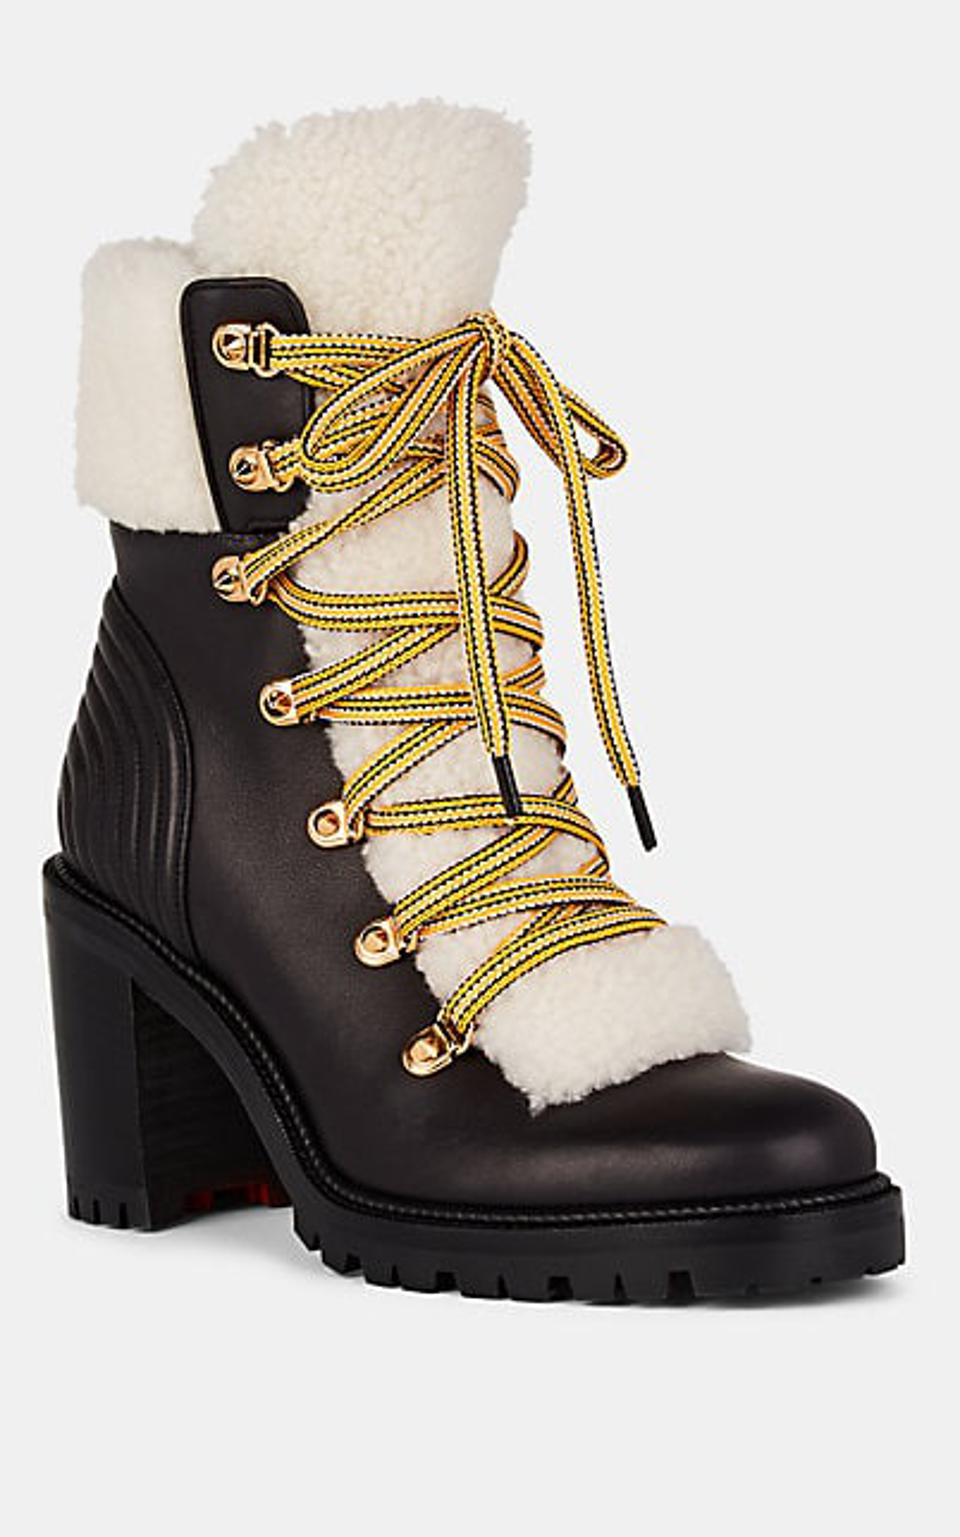 Designer Winter Boots